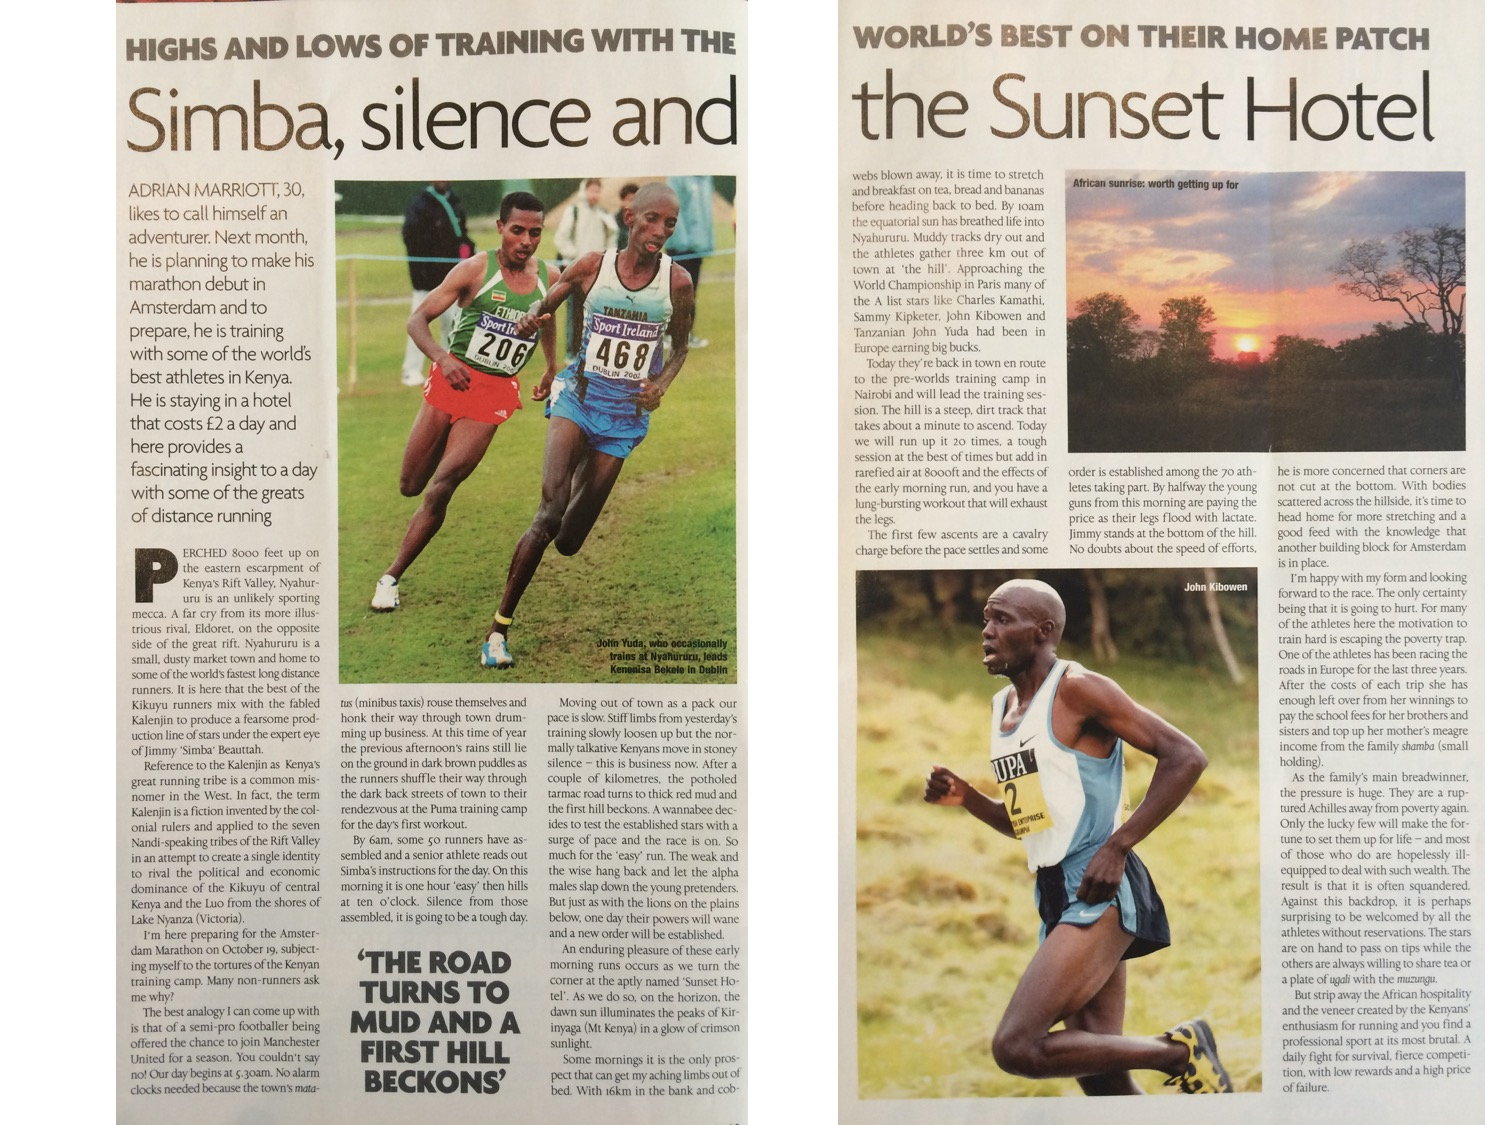 This is the article from the British Runner magazine mentioned above.